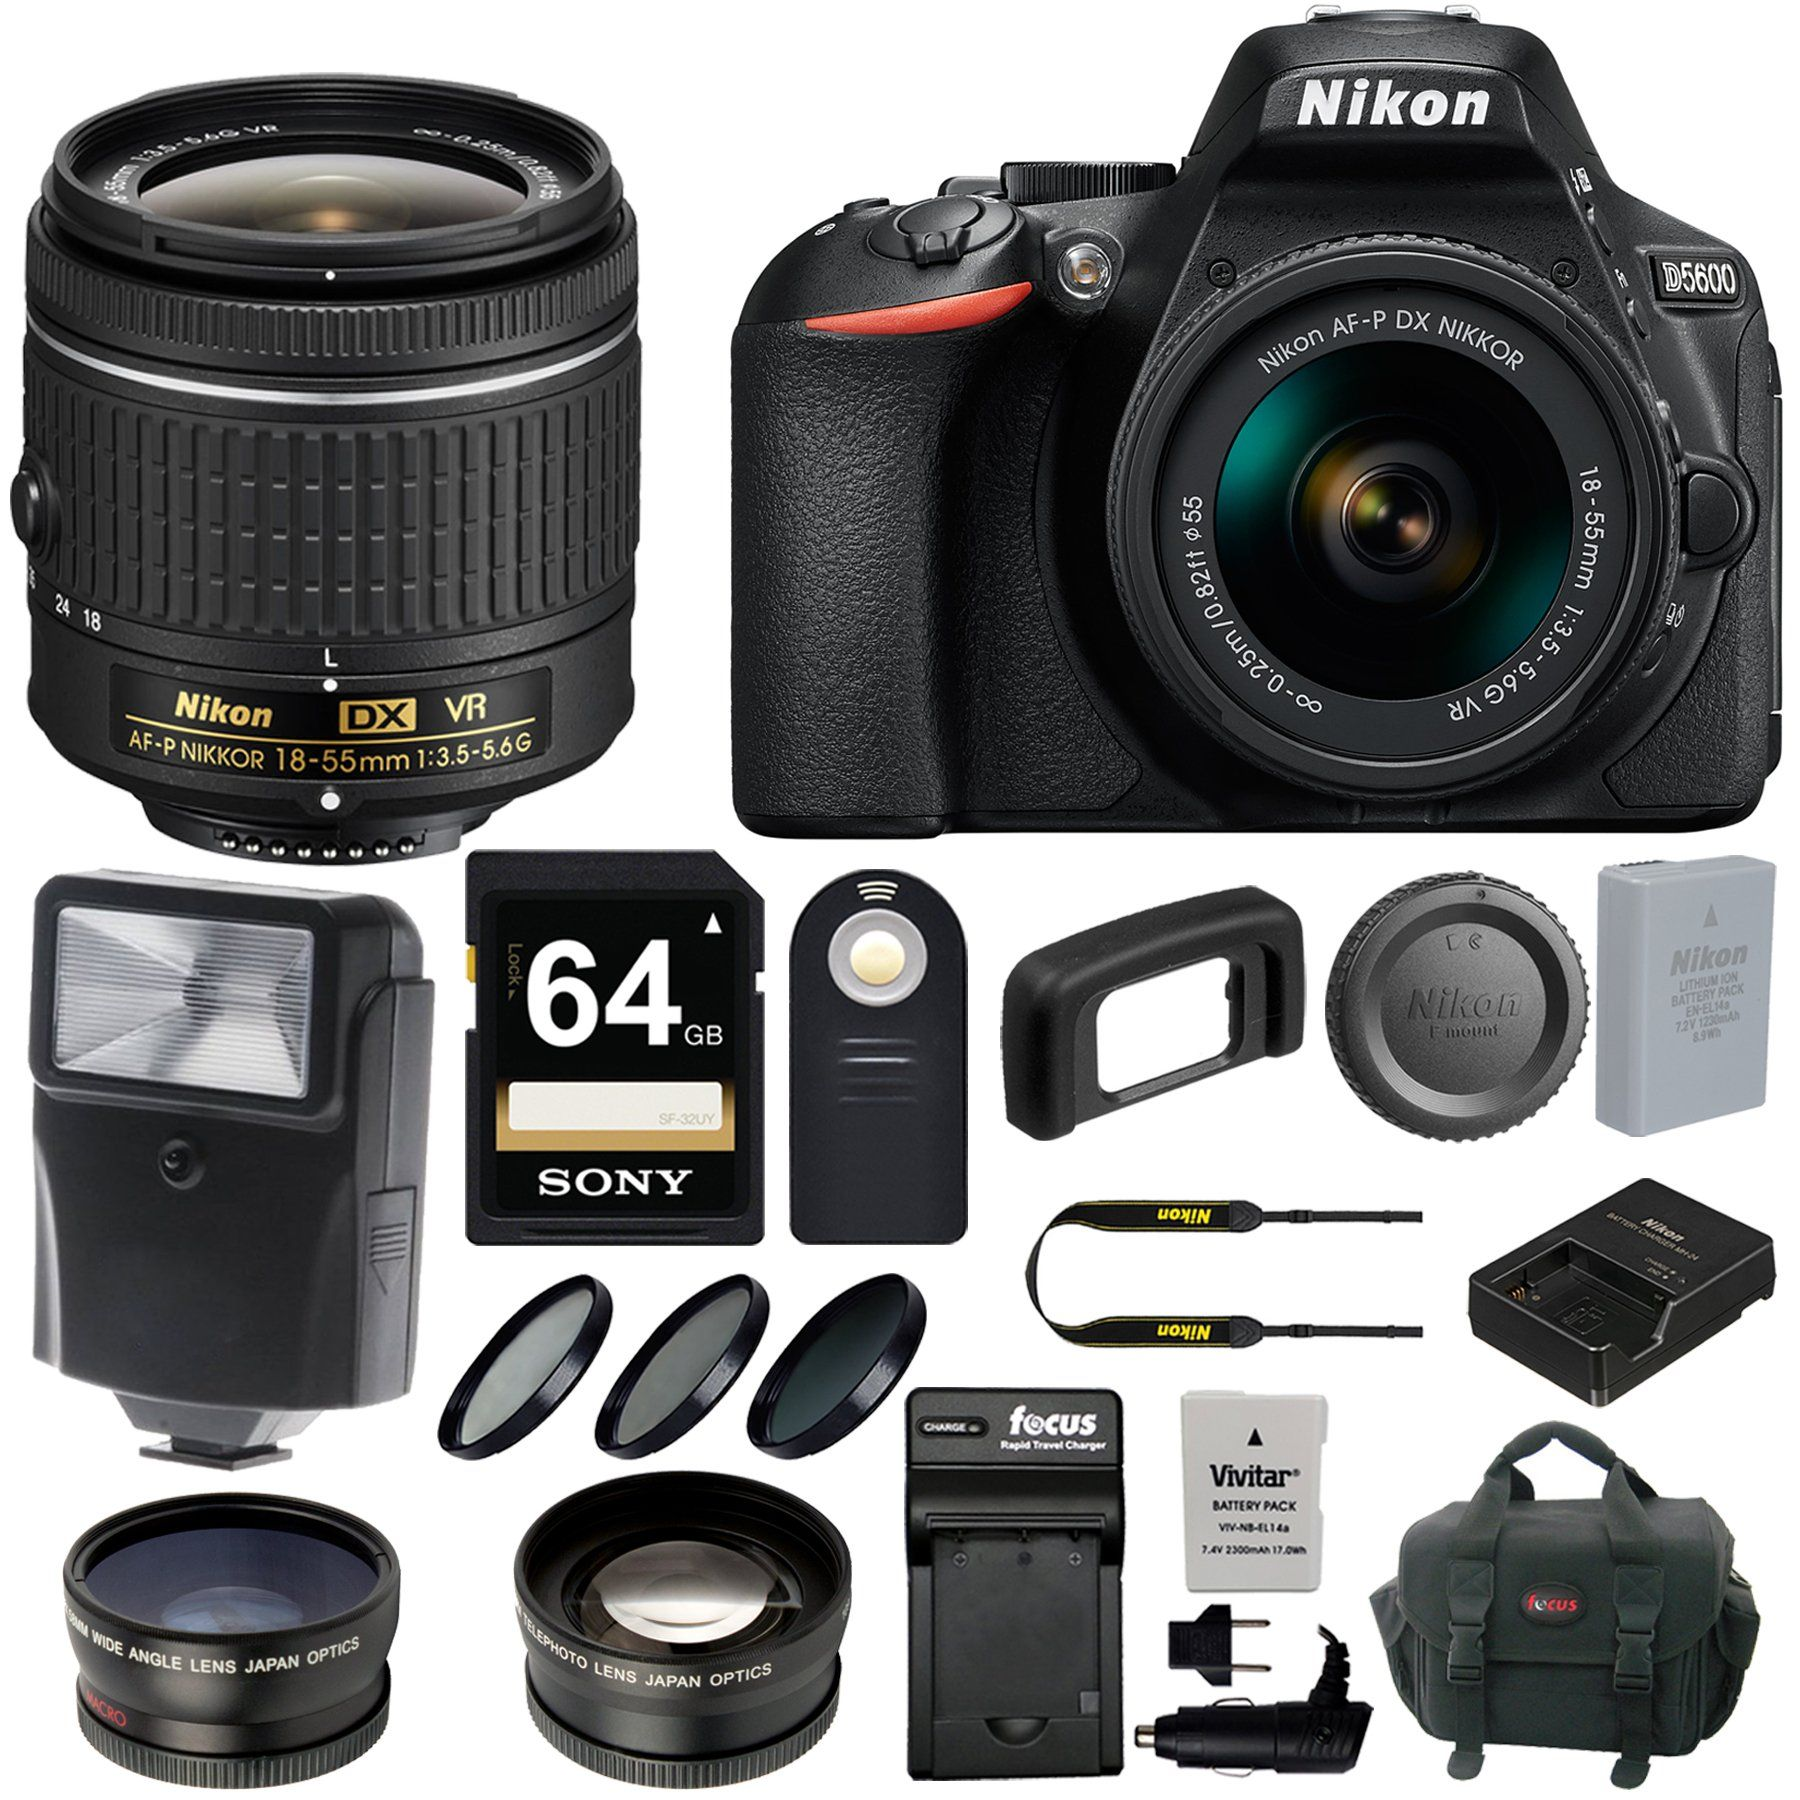 Nikon D5600 Dslr Camera With 18 55mm Lens And 64gb Card Flash Cleaning Kit 7 In 1 Batteries